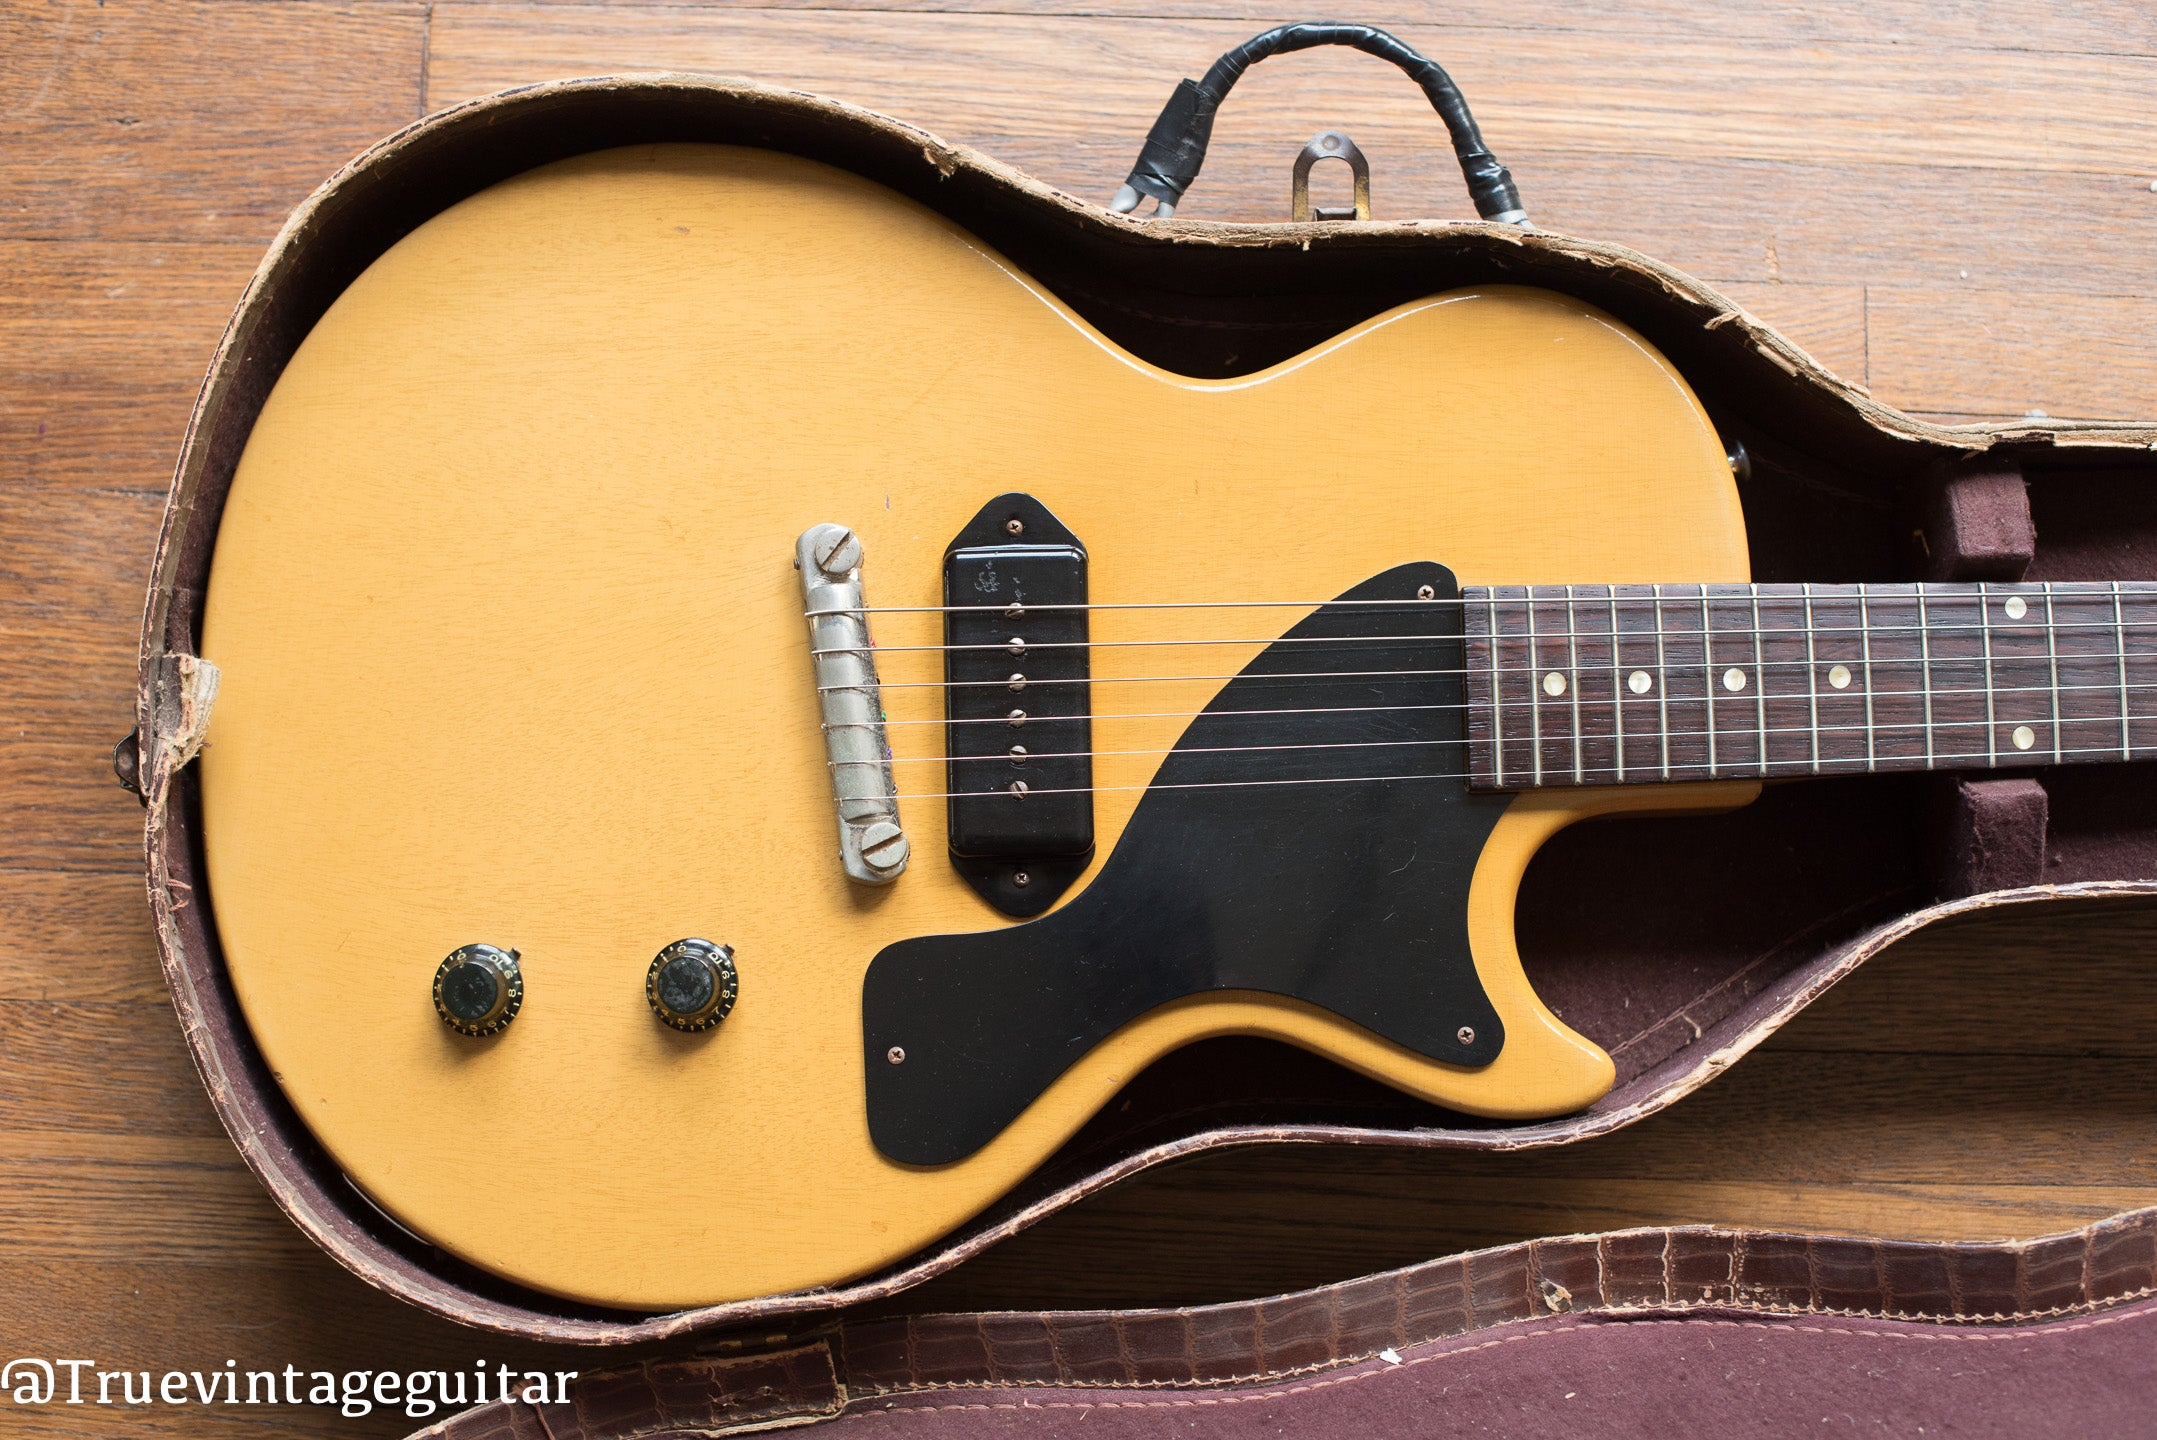 Where to sell vintage Gibson Les Paul guitar